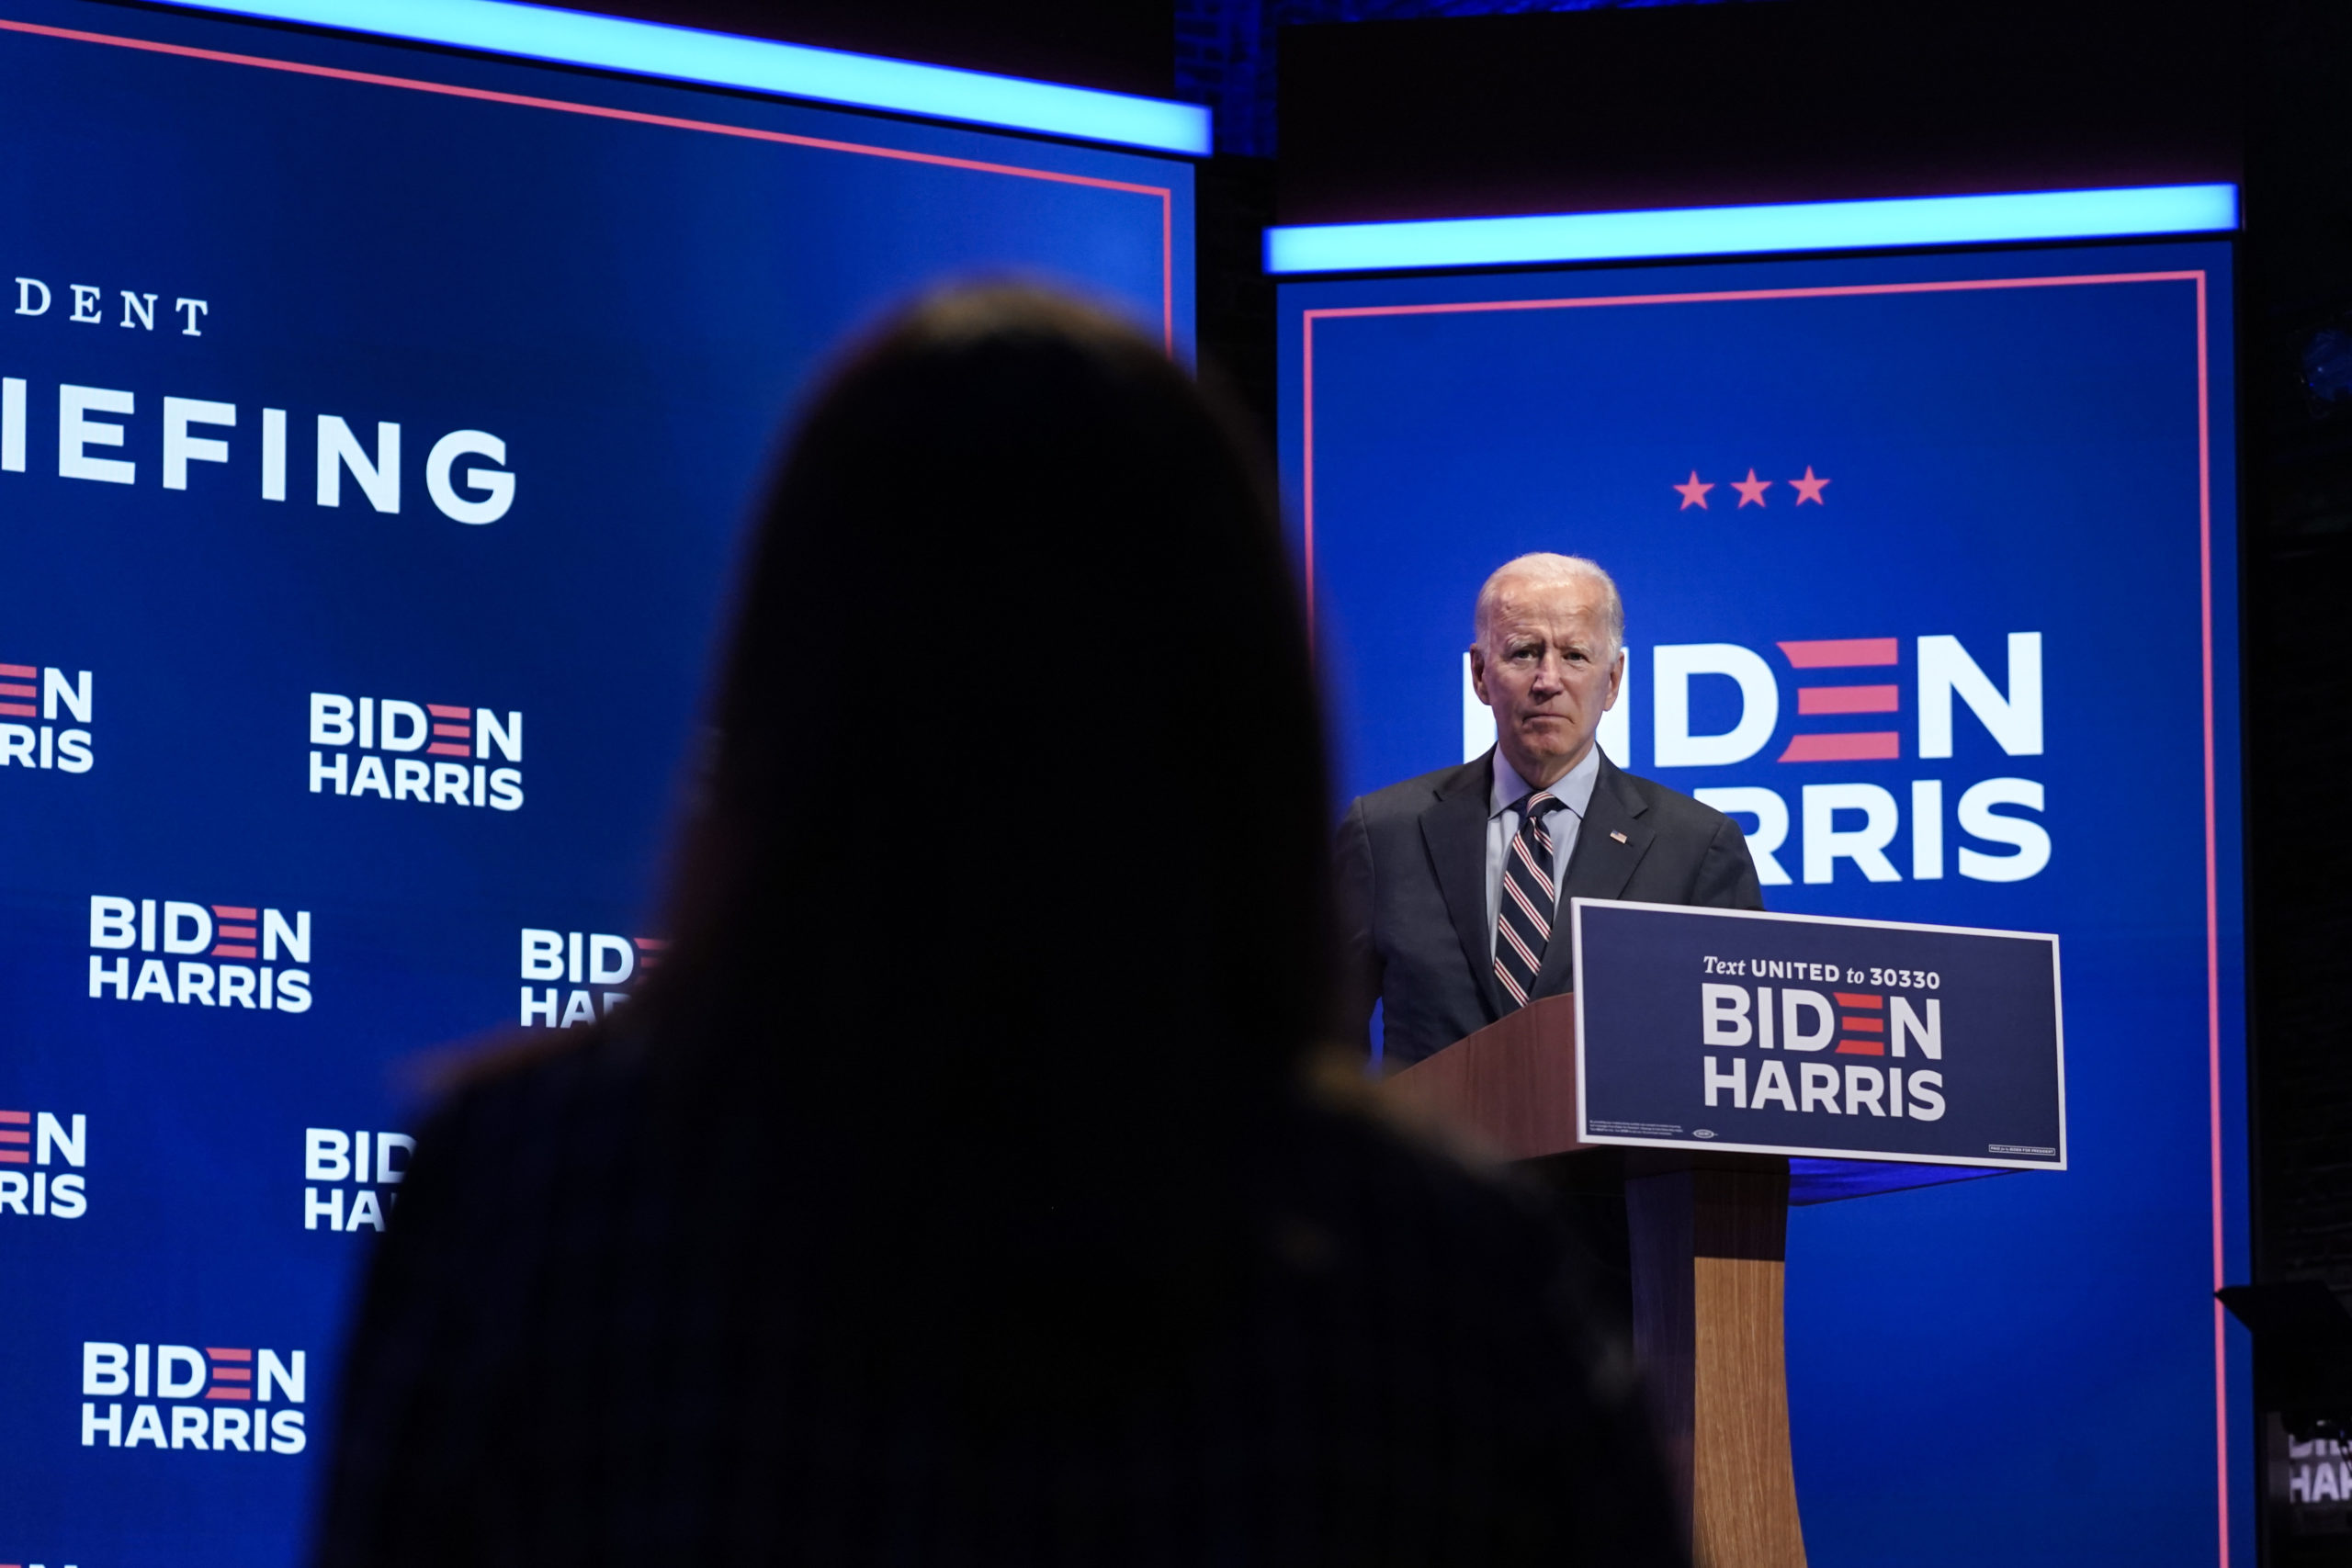 Democratic presidential nominee and former Vice President Joe Biden takes questions from reporters after a virtual coronavirus briefing with medical professionals on September 16, 2020 in Wilmington, Delaware. (Drew Angerer/Getty Images)